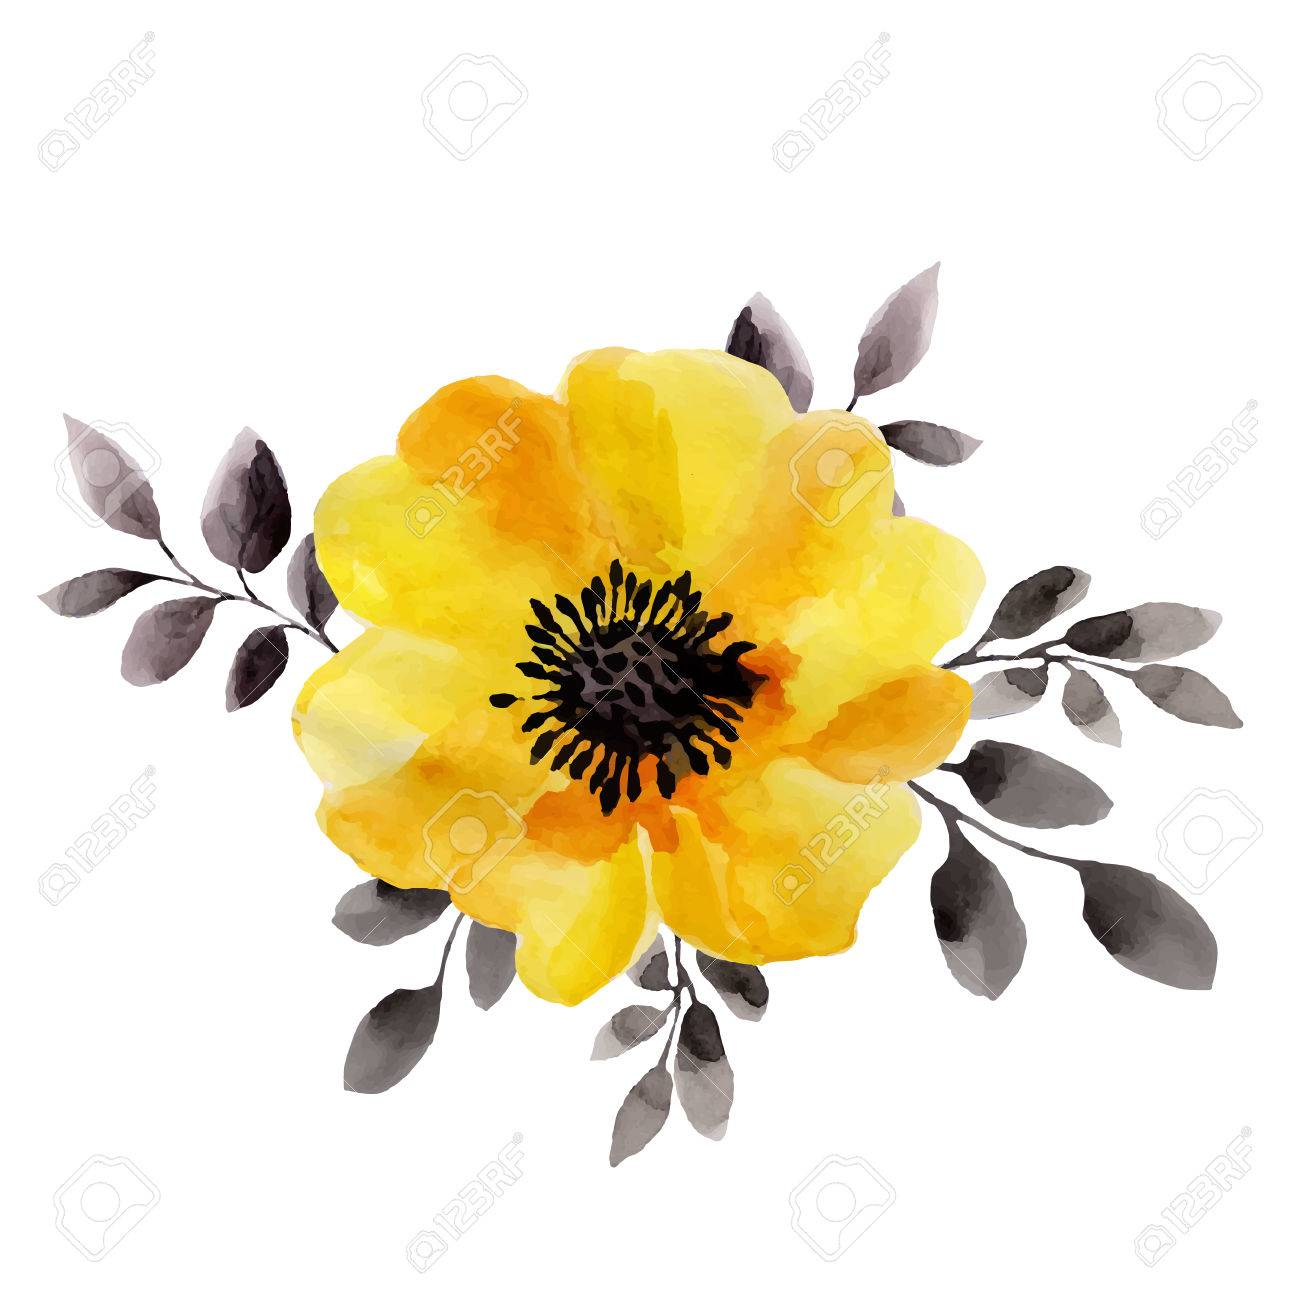 Watercolor Illustrations Of Yellow Flower Isolated On White